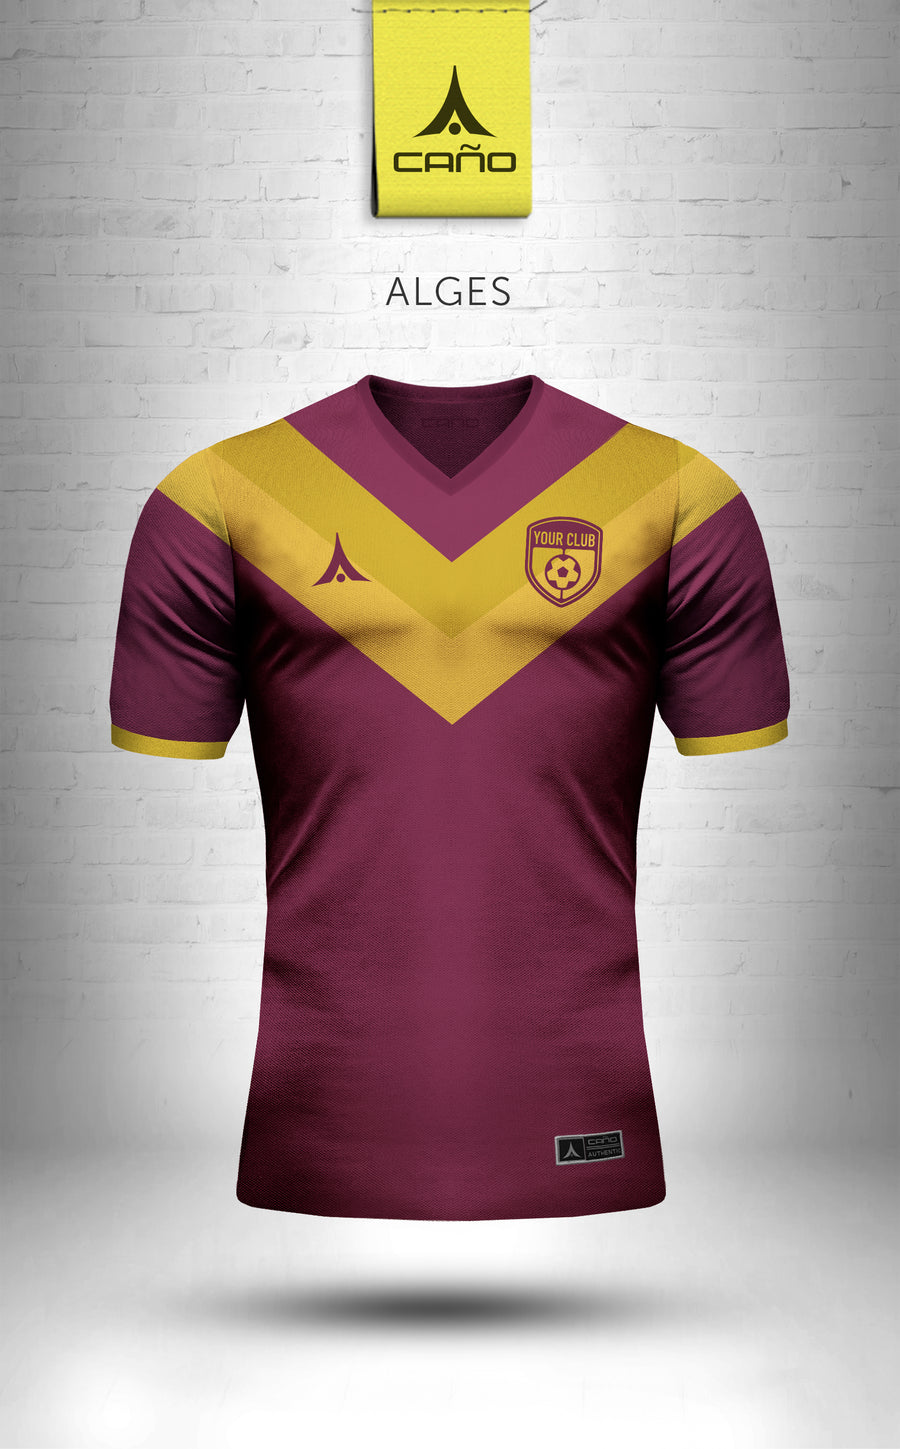 Alges in maroon/gold